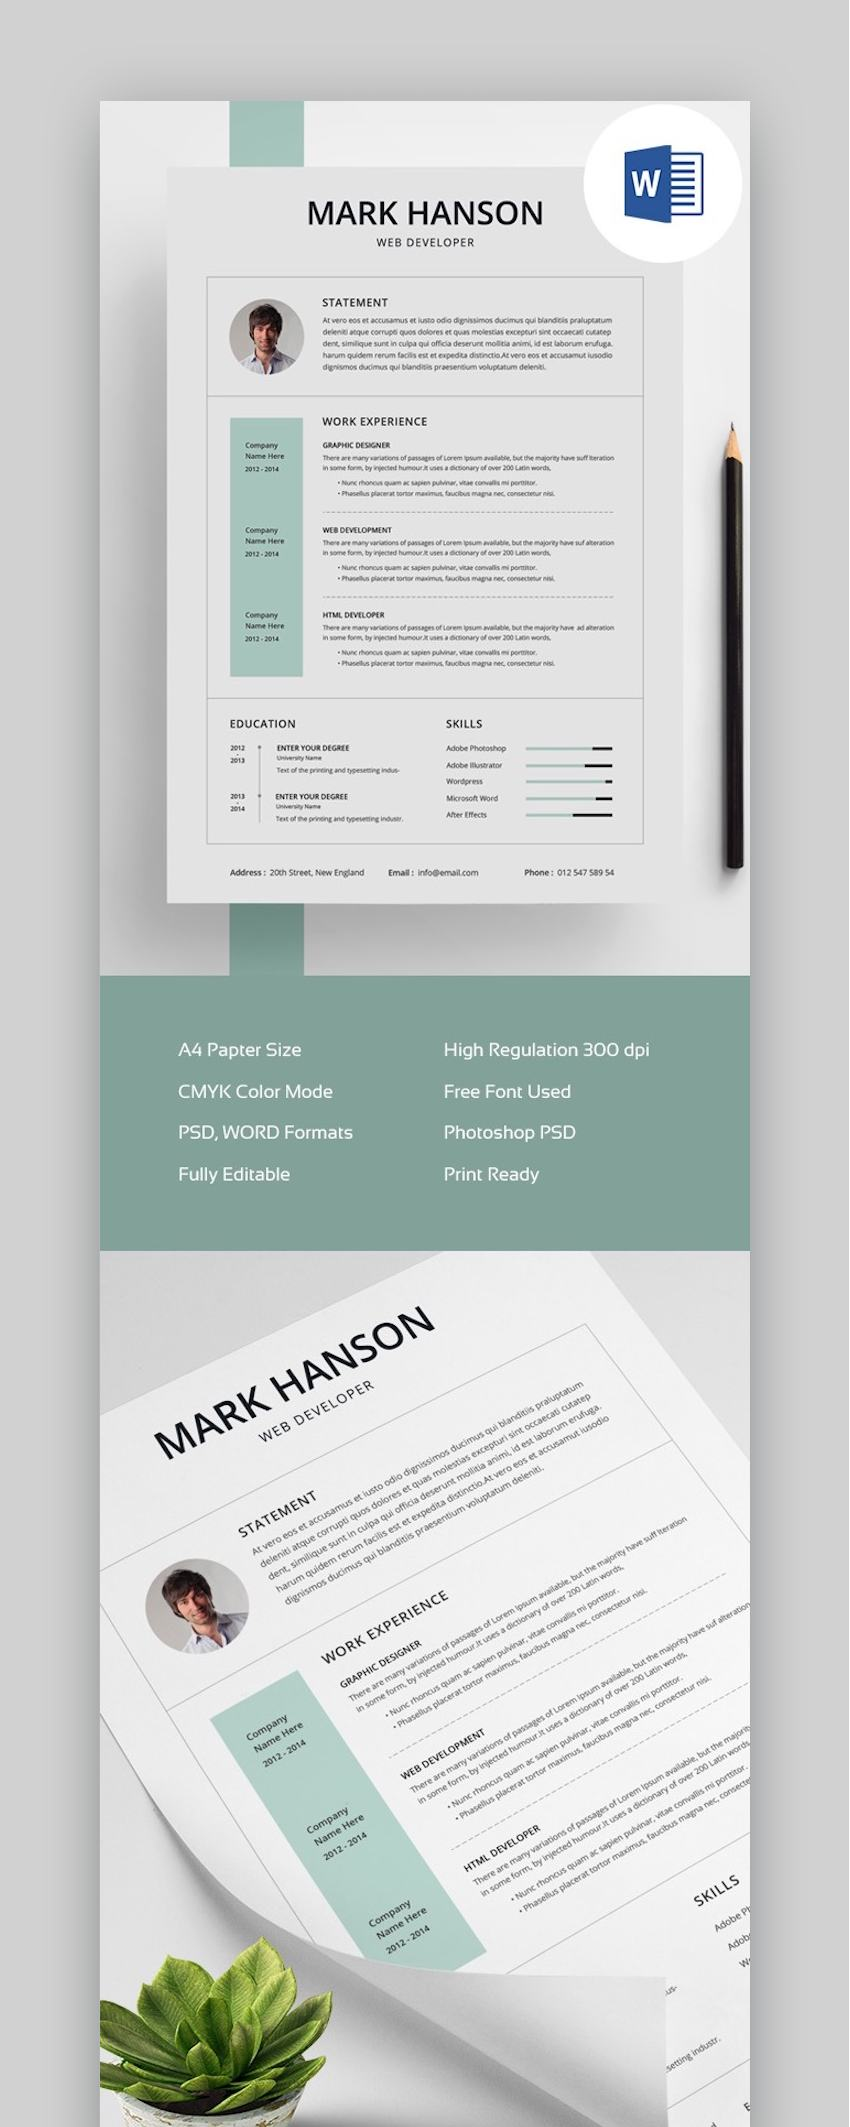 25 Free Creative Resume Templates Word Psd Downloads For 2021